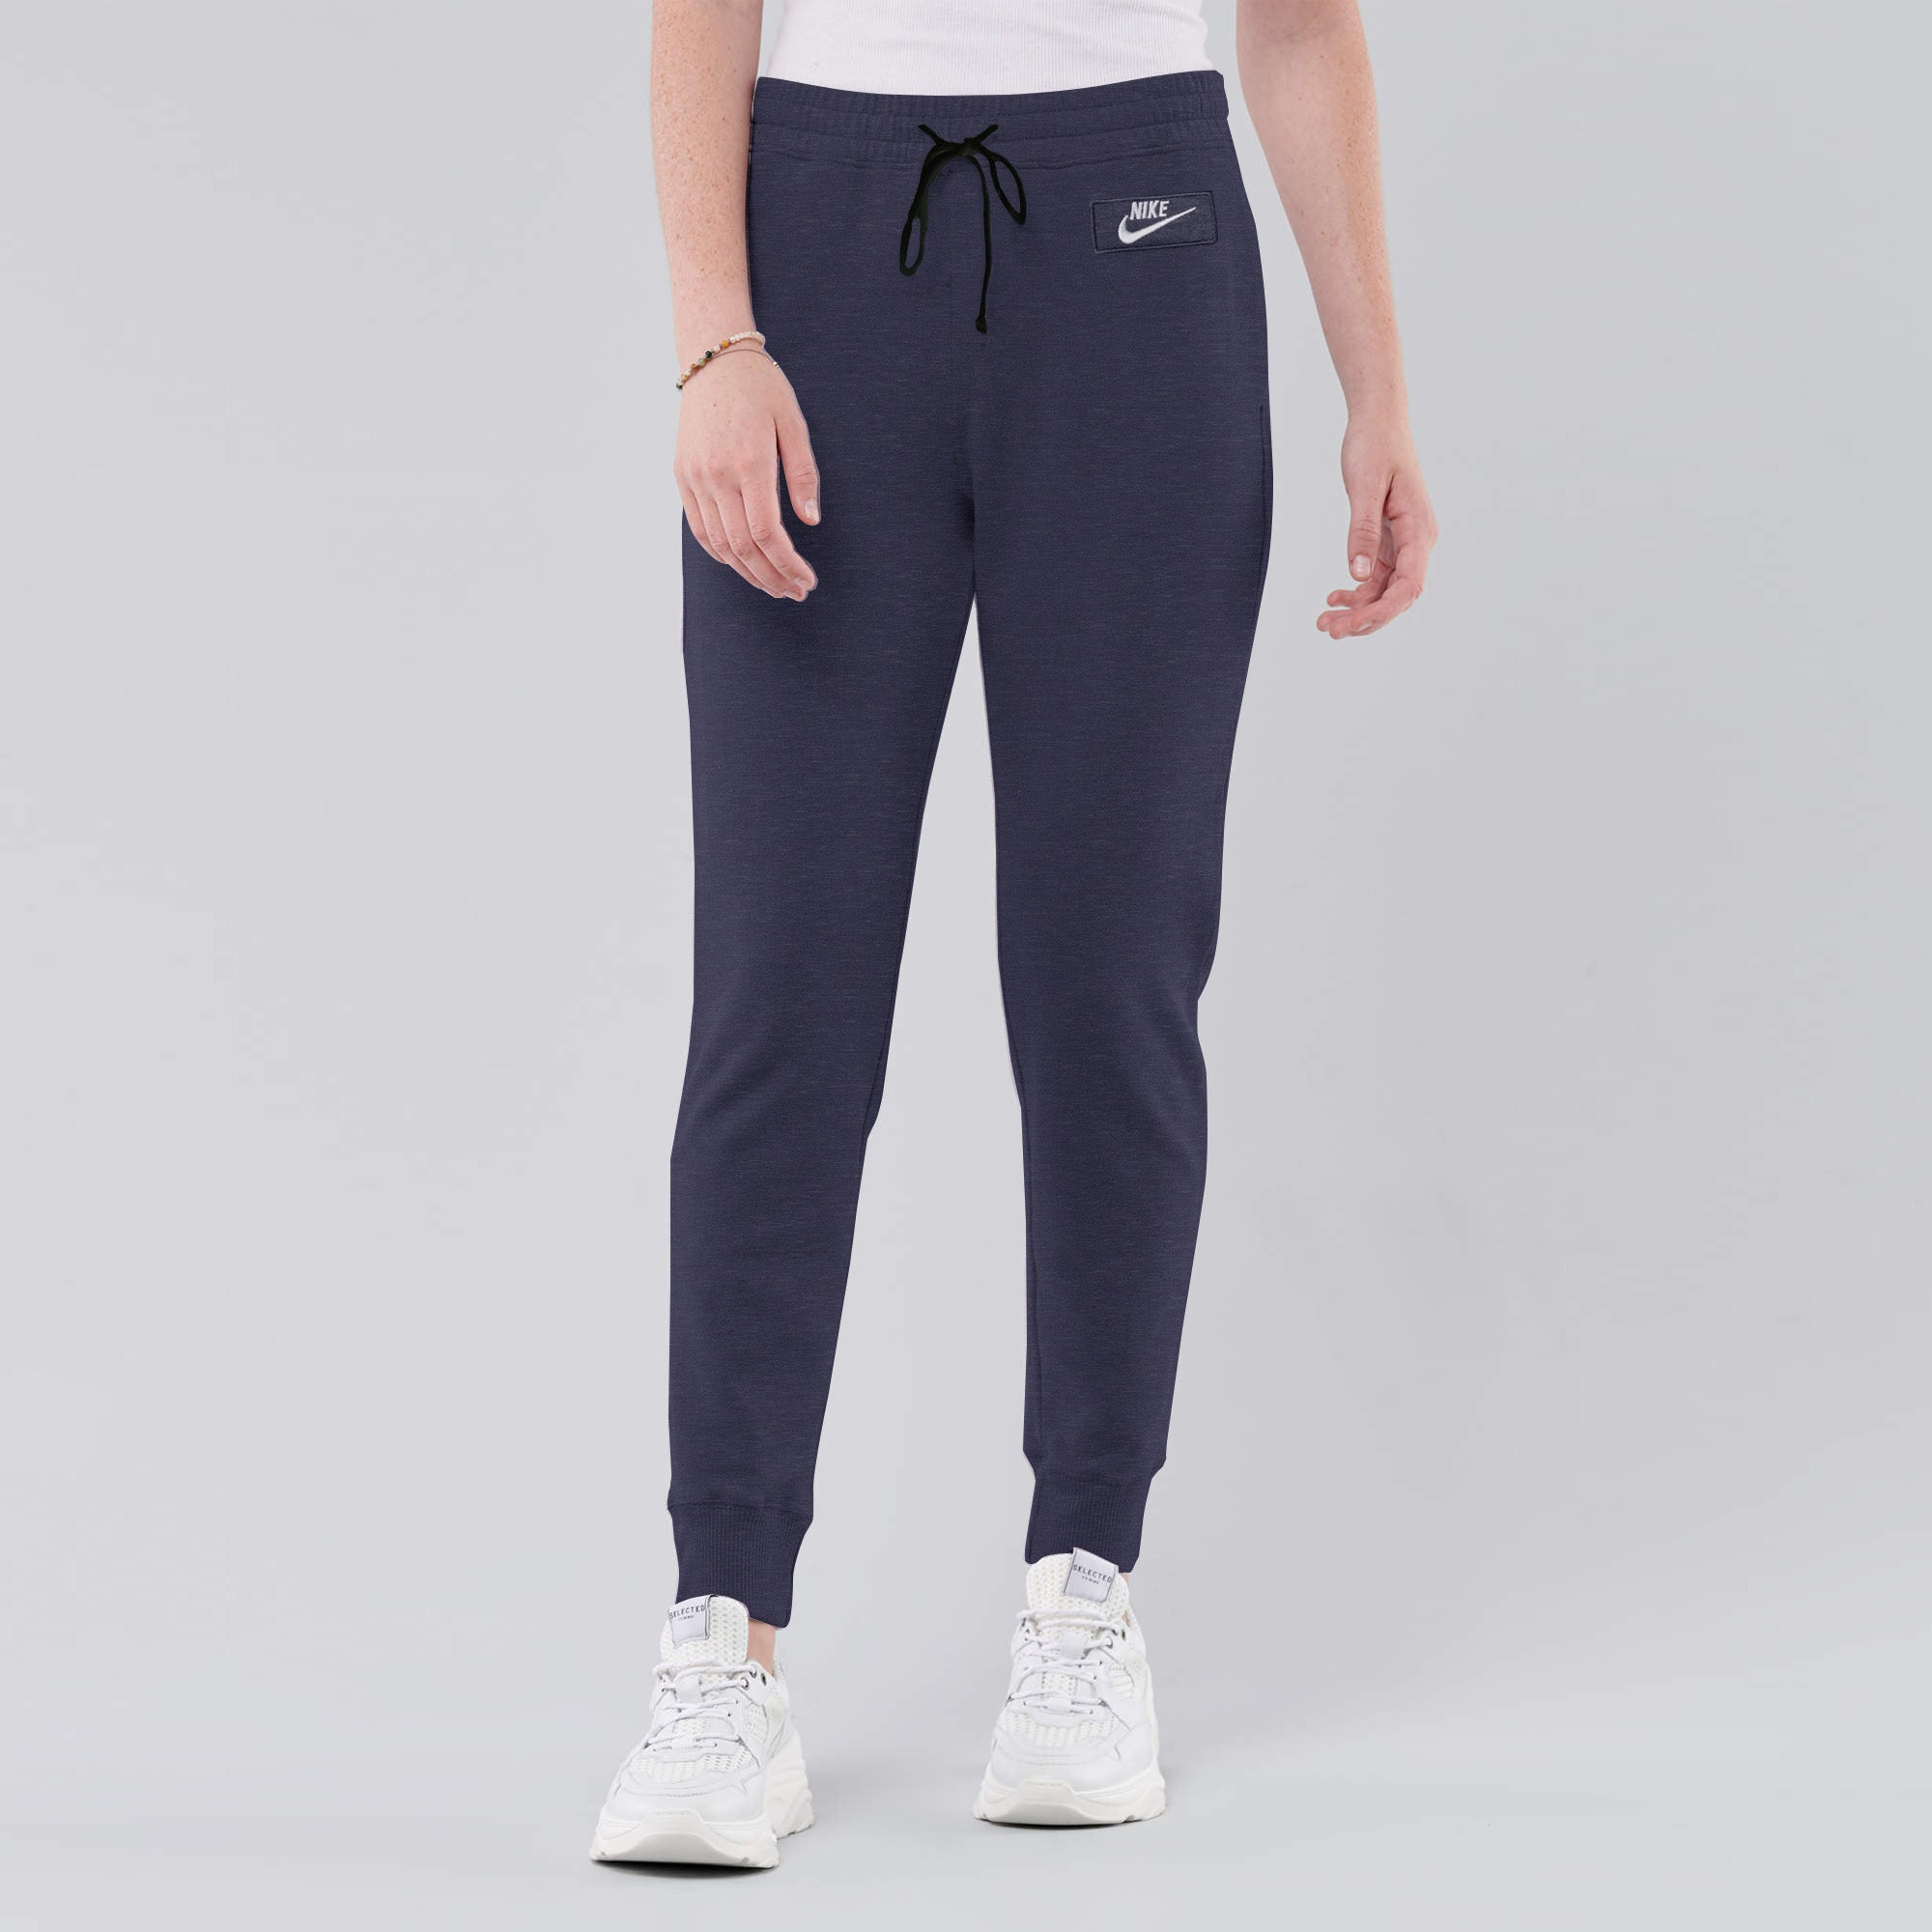 NK Fleece Slim Fit Jogger Trouser For Ladies-Light Blue Melange With White Embroidery-AN1956